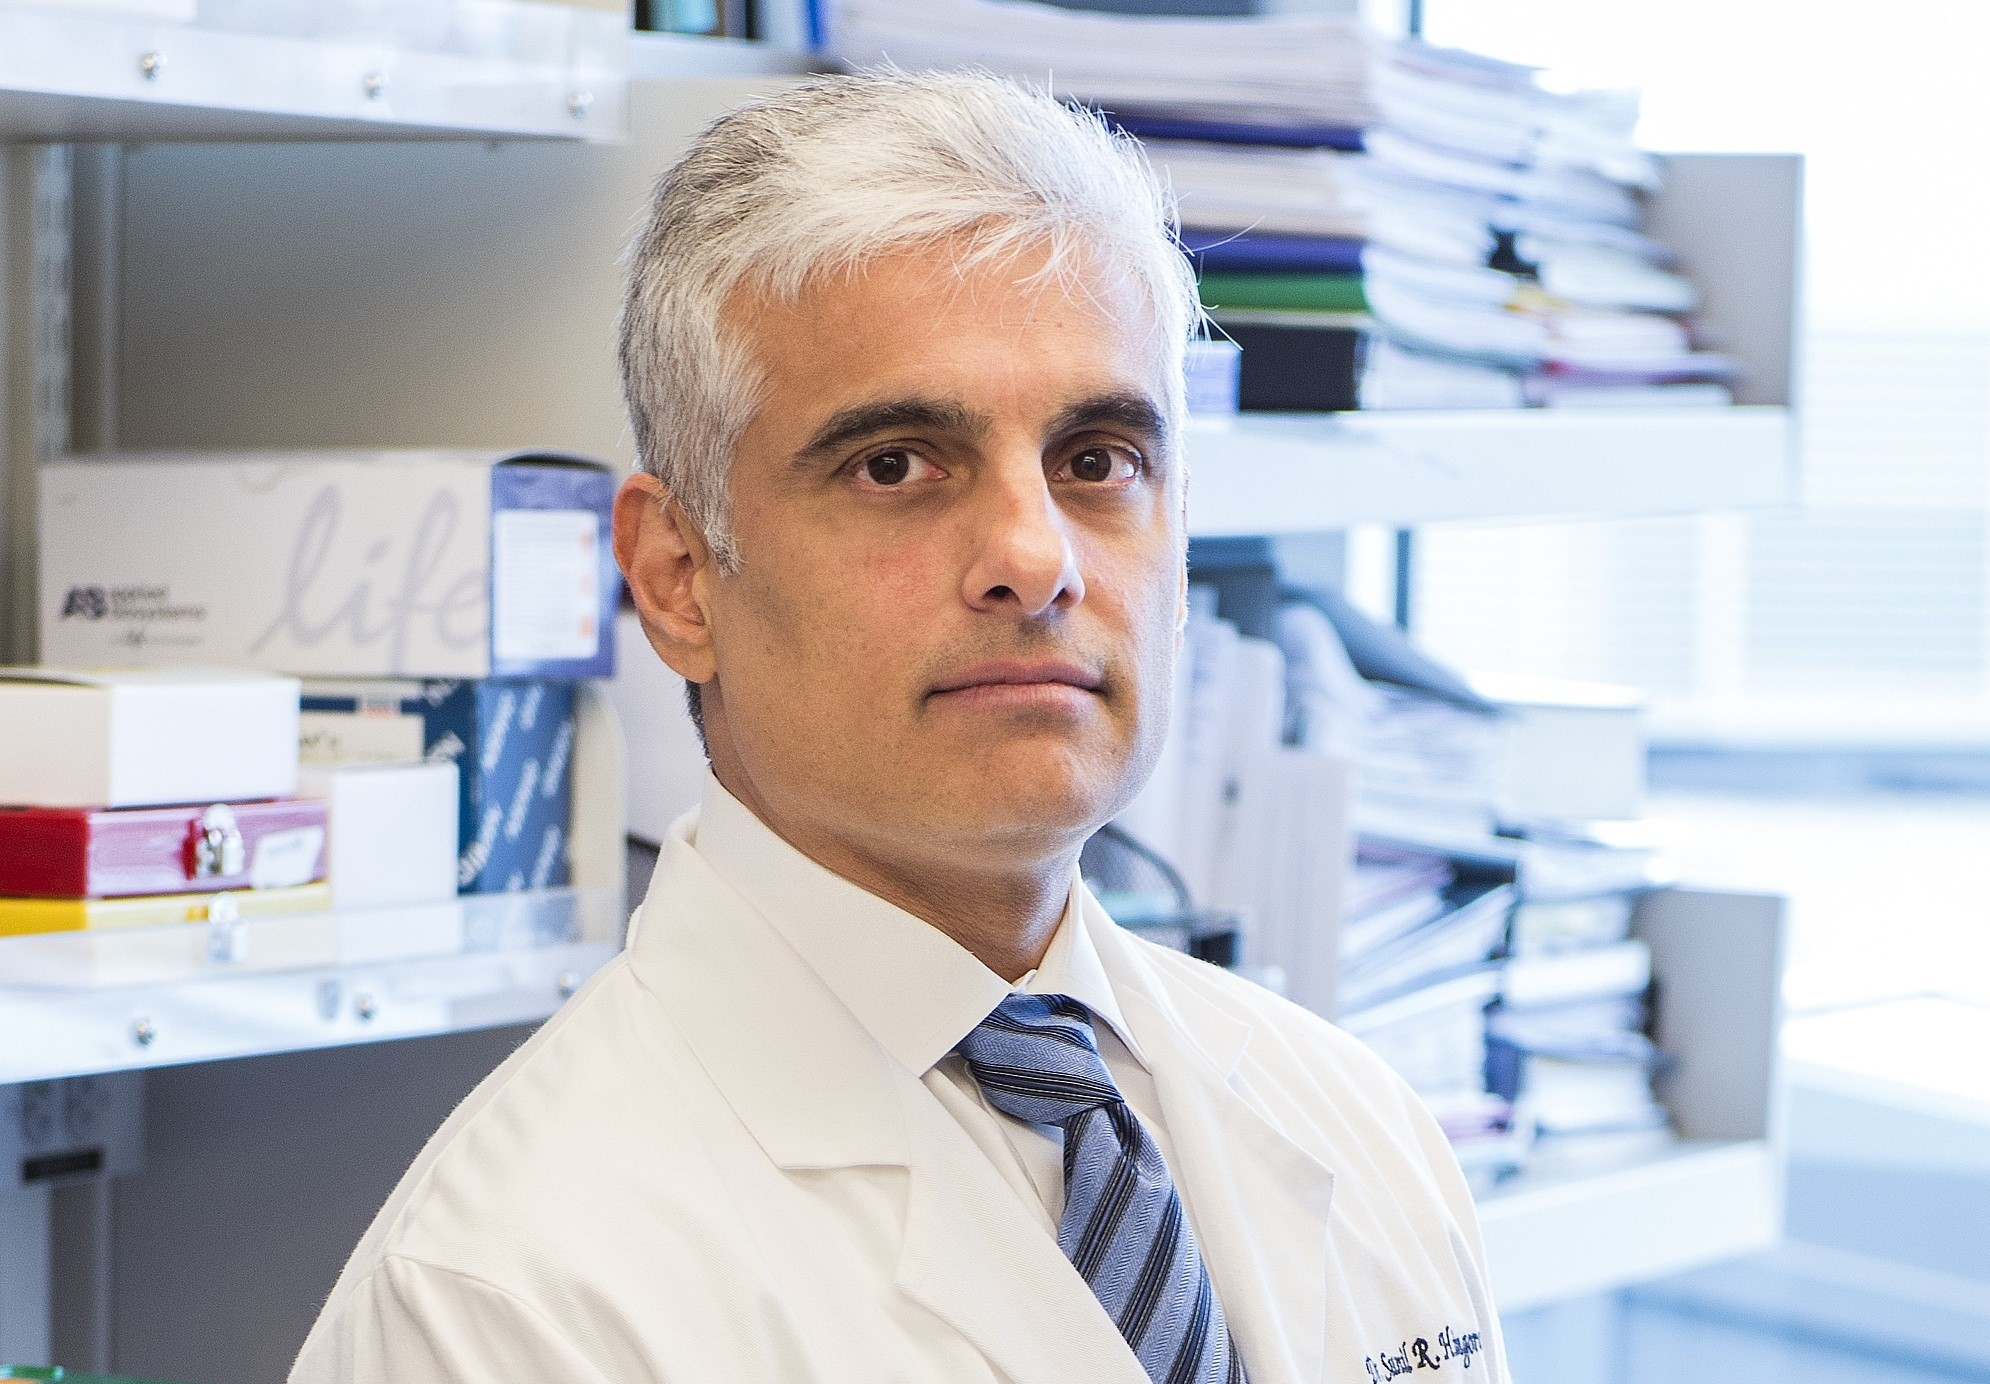 Cancer researcher Sunil Hingorani in his white coat sitting ront of office shelves